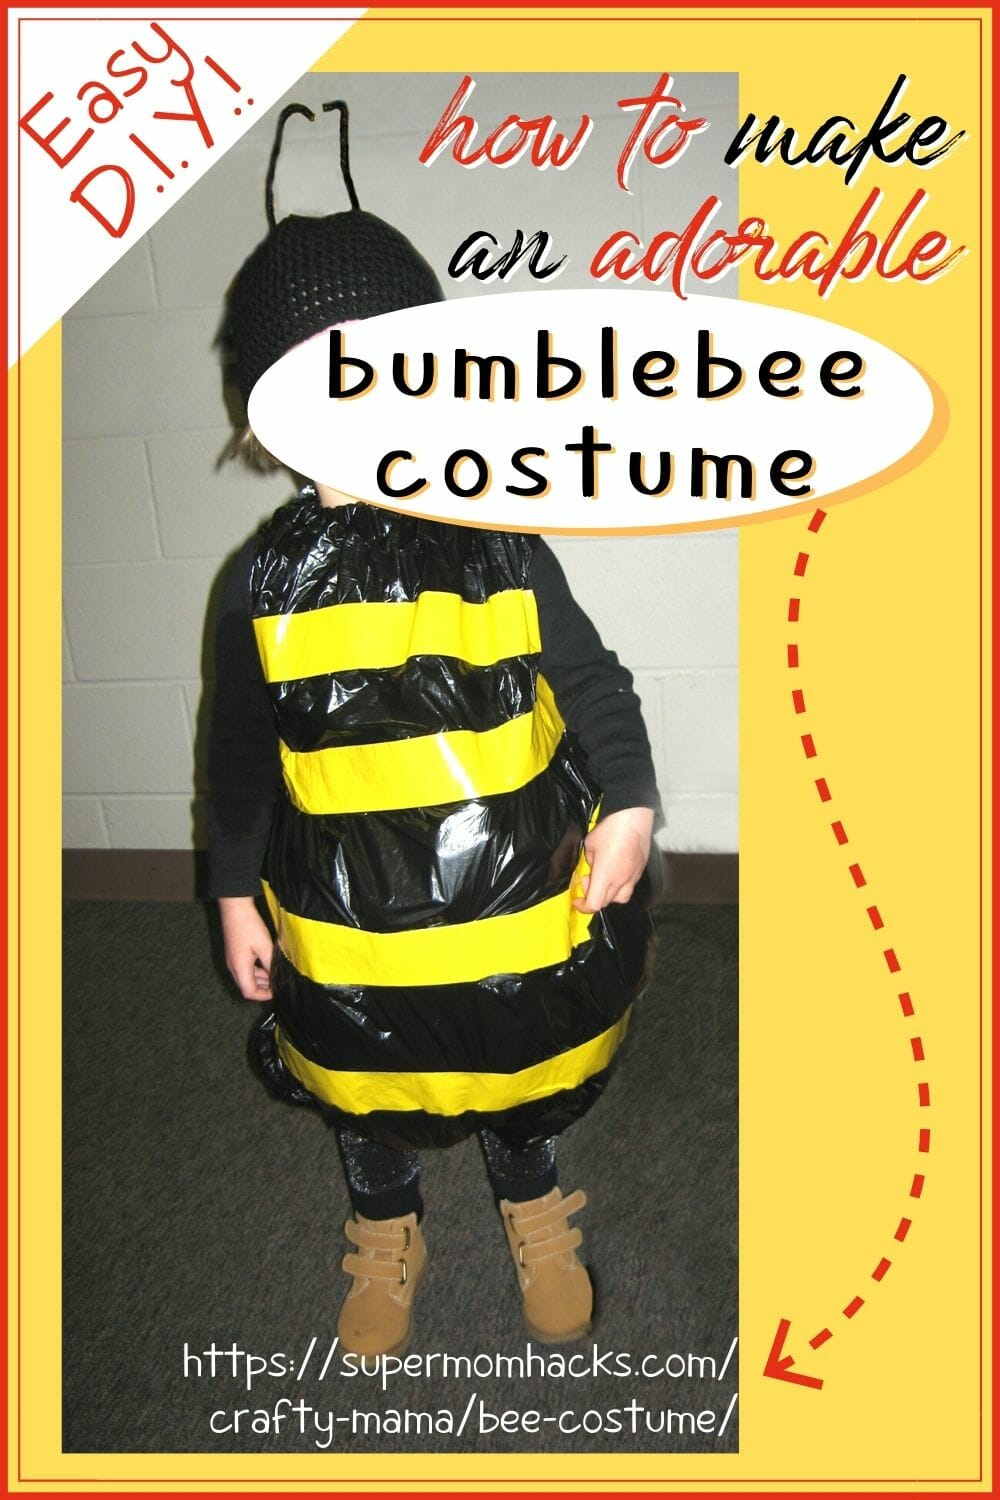 If you want a super-cute, super-easy costume to make, you just can't beat this simple yet adorable DIY bee costume. Easy DIY Halloween Costumes: Bumbling Bee Costume - SuperMomHacks | bee costume | bee costume diy | bee costume kids | bumble bee costume toddler | easy bee costume | diy halloween costumes | easy costume ideas | easy halloween costumes | halloween costumes diy | halloween costume ideas | costume ideas | bumble bee costume girl | bee costume kids | bee costume toddler